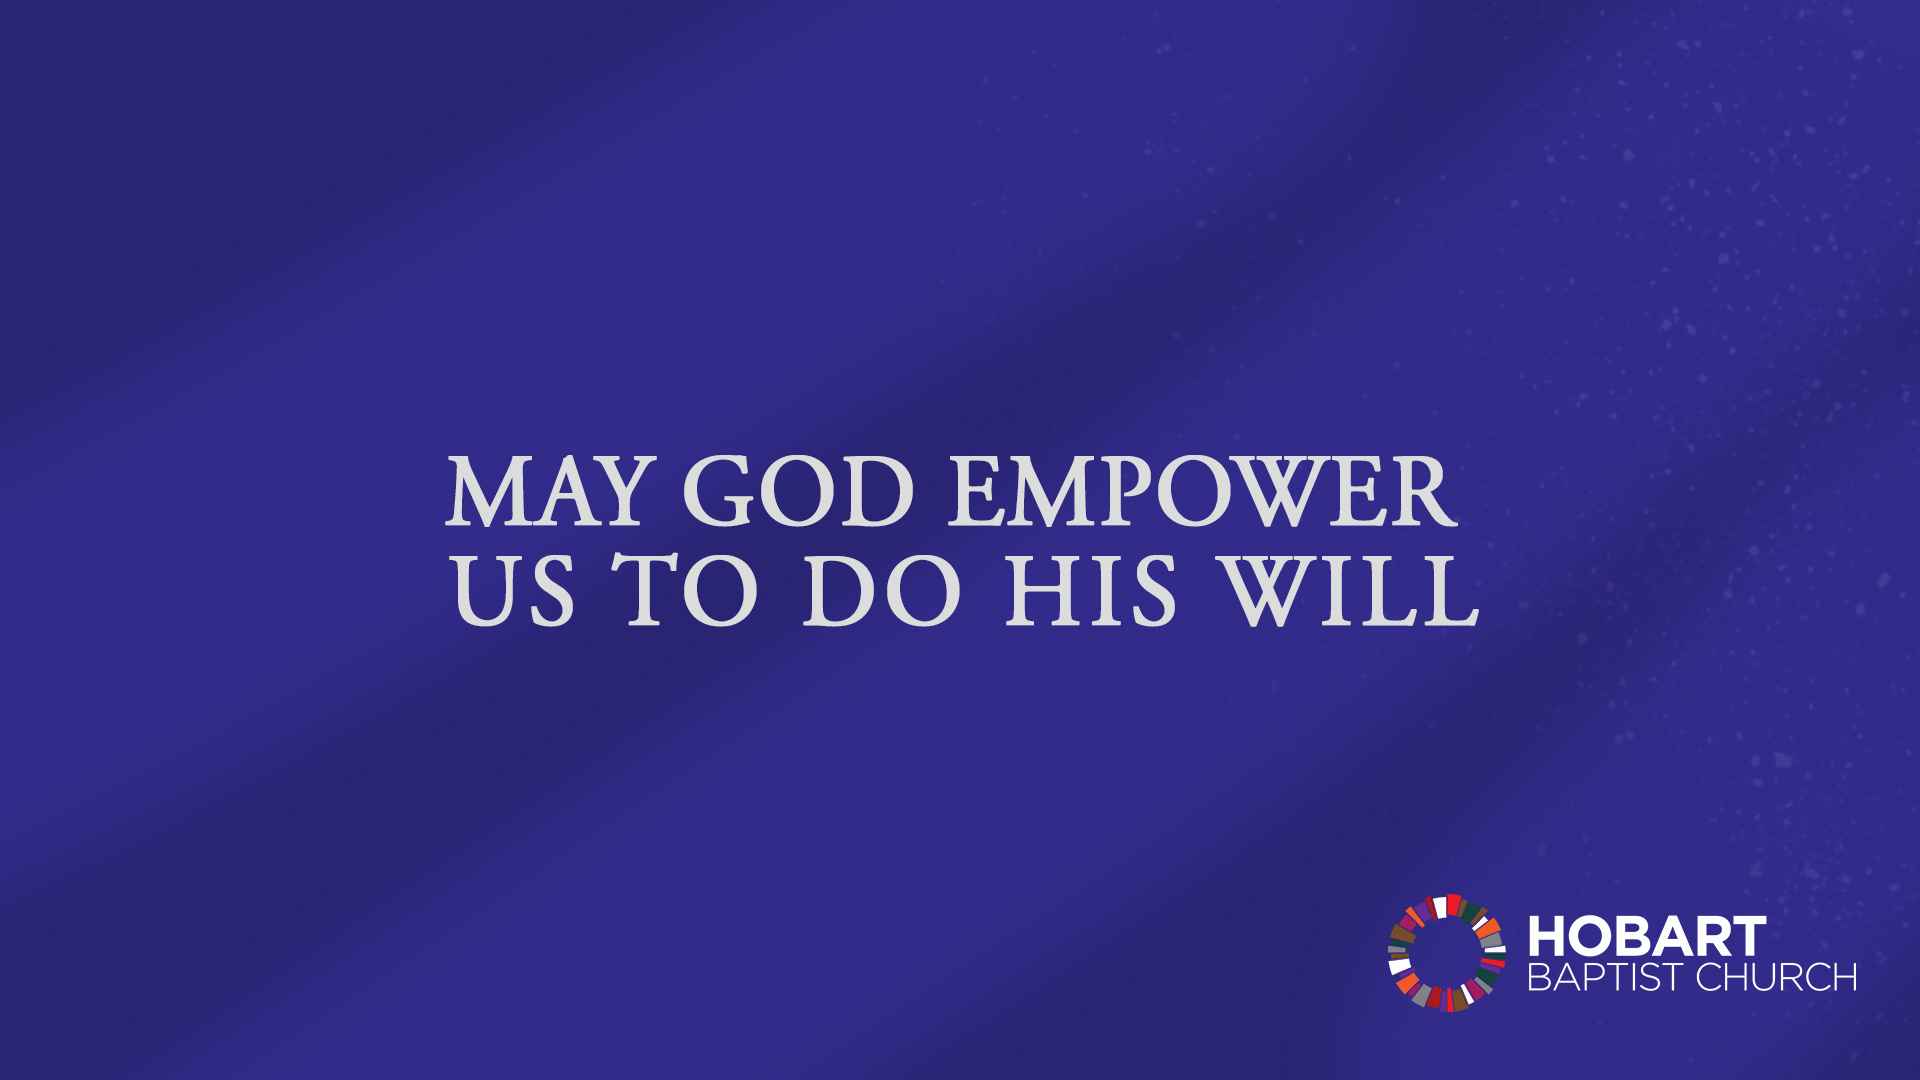 May God Empoiwer Us To Do His Will